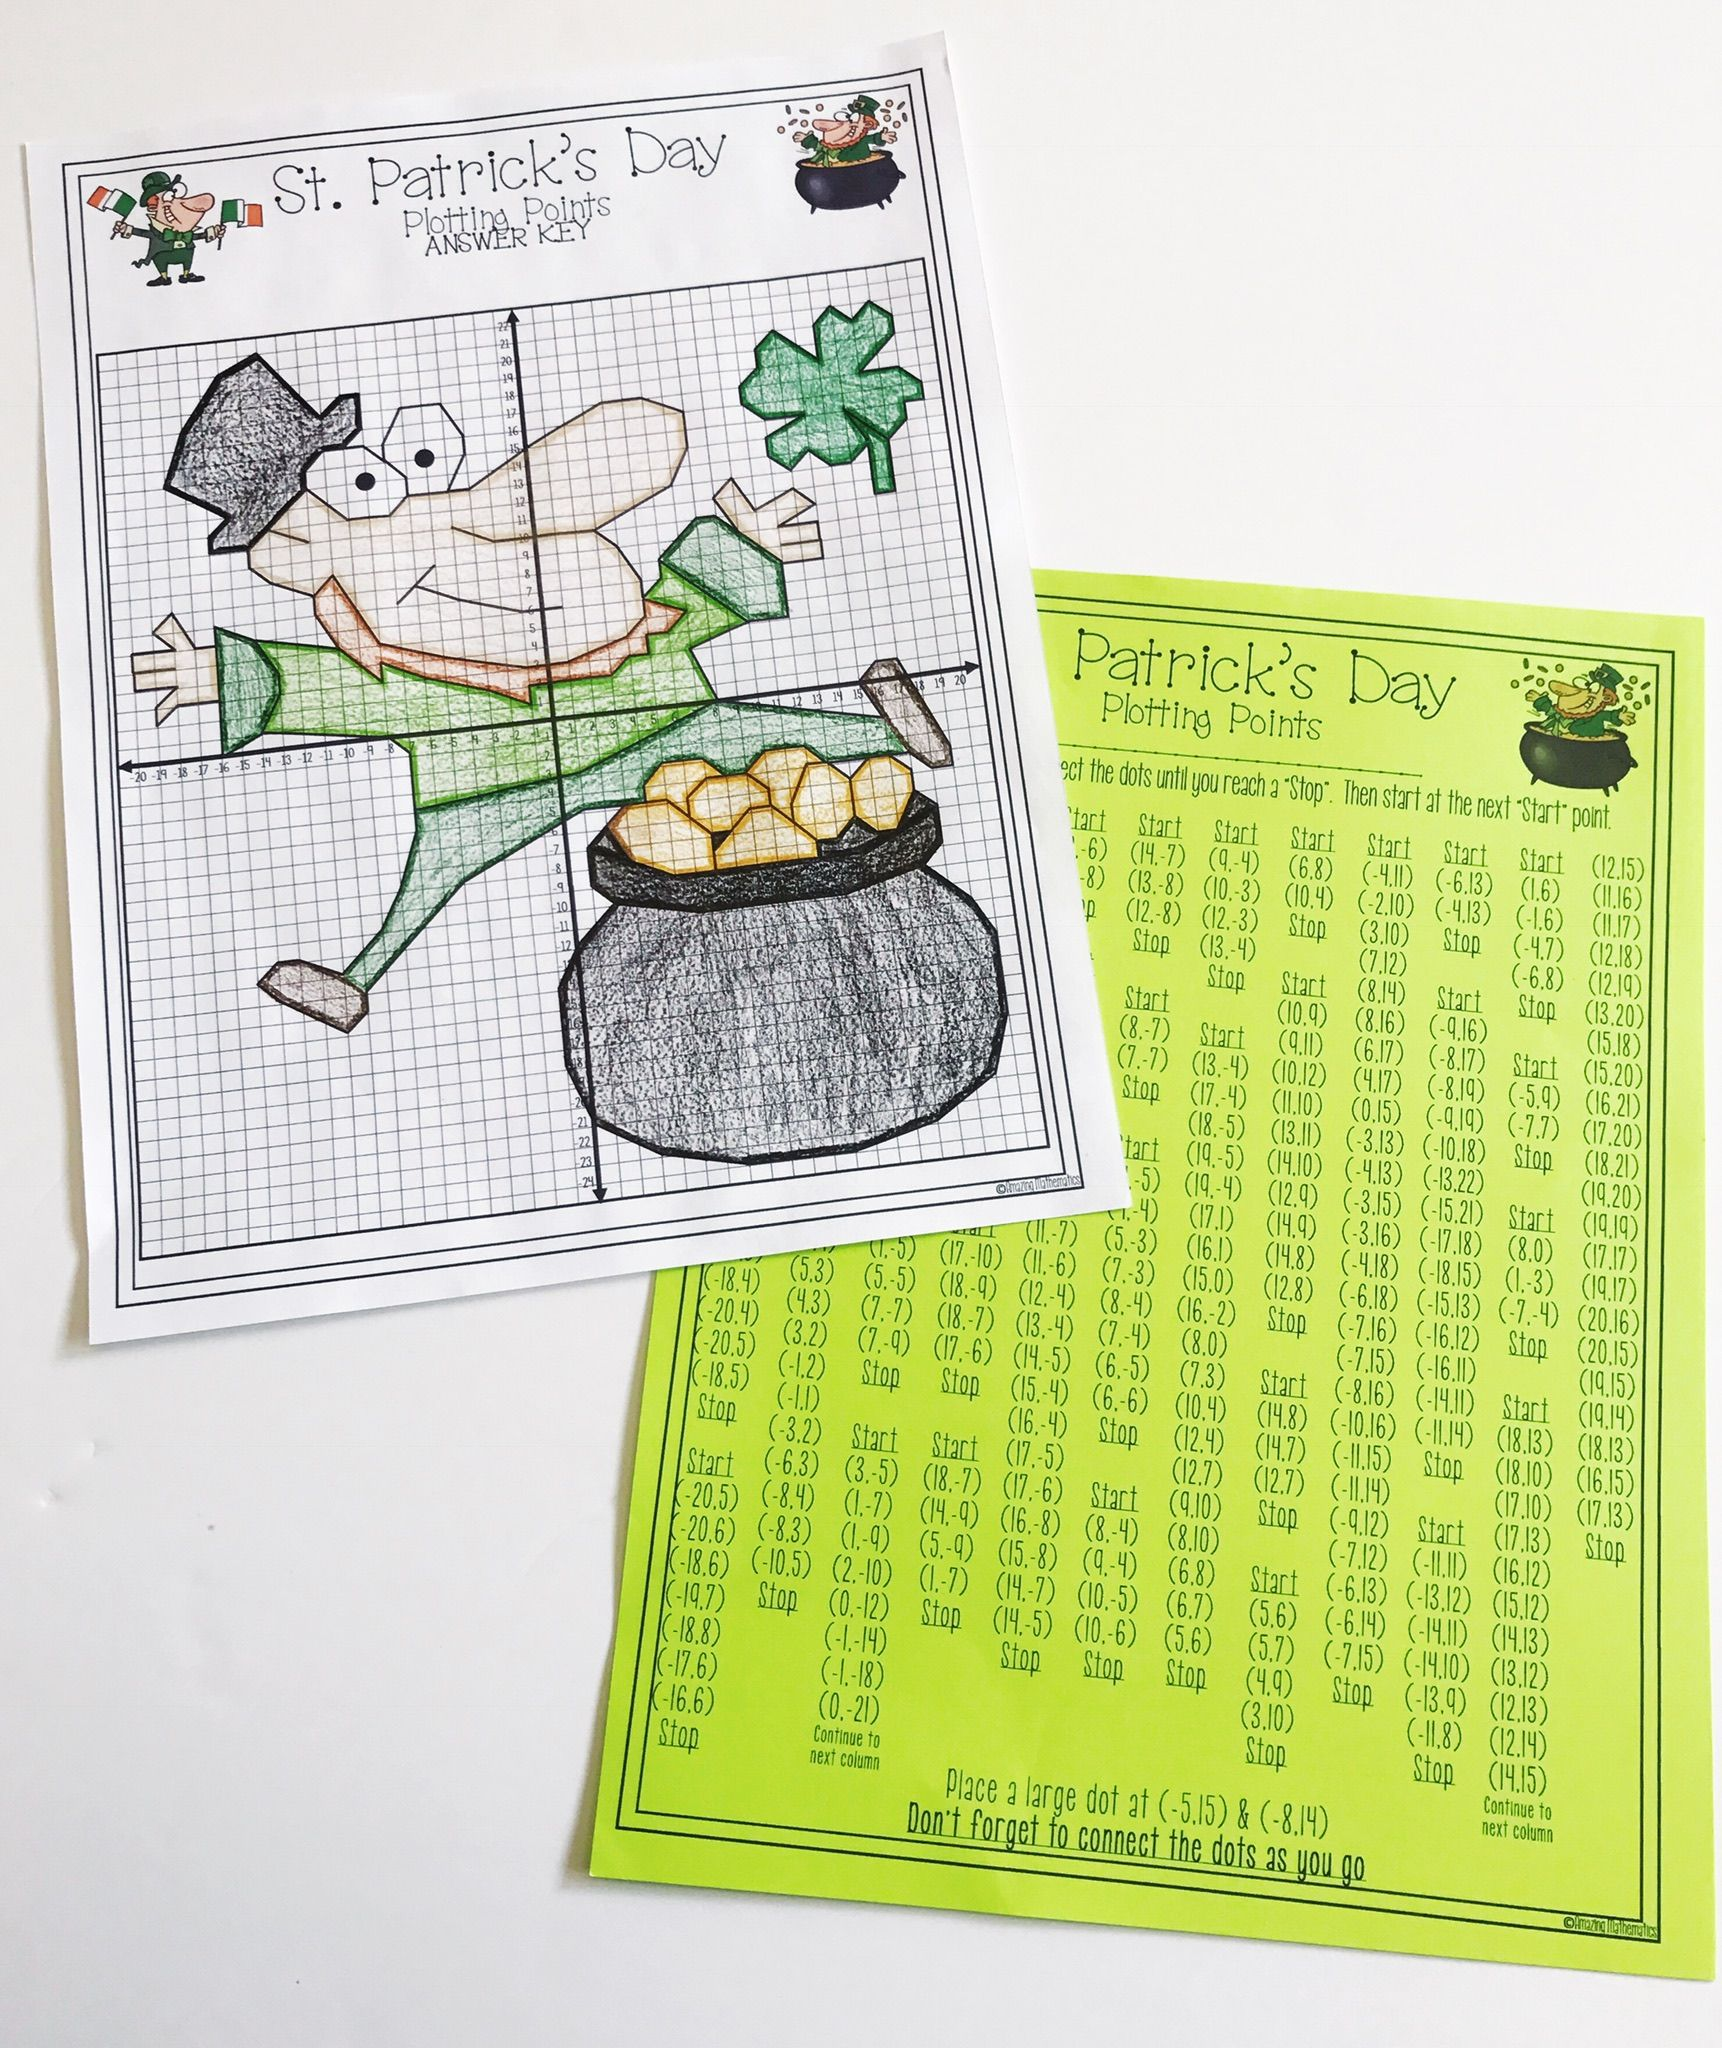 worksheet Plotting Points Worksheets st patricks day math activity plotting points mystery picture picture